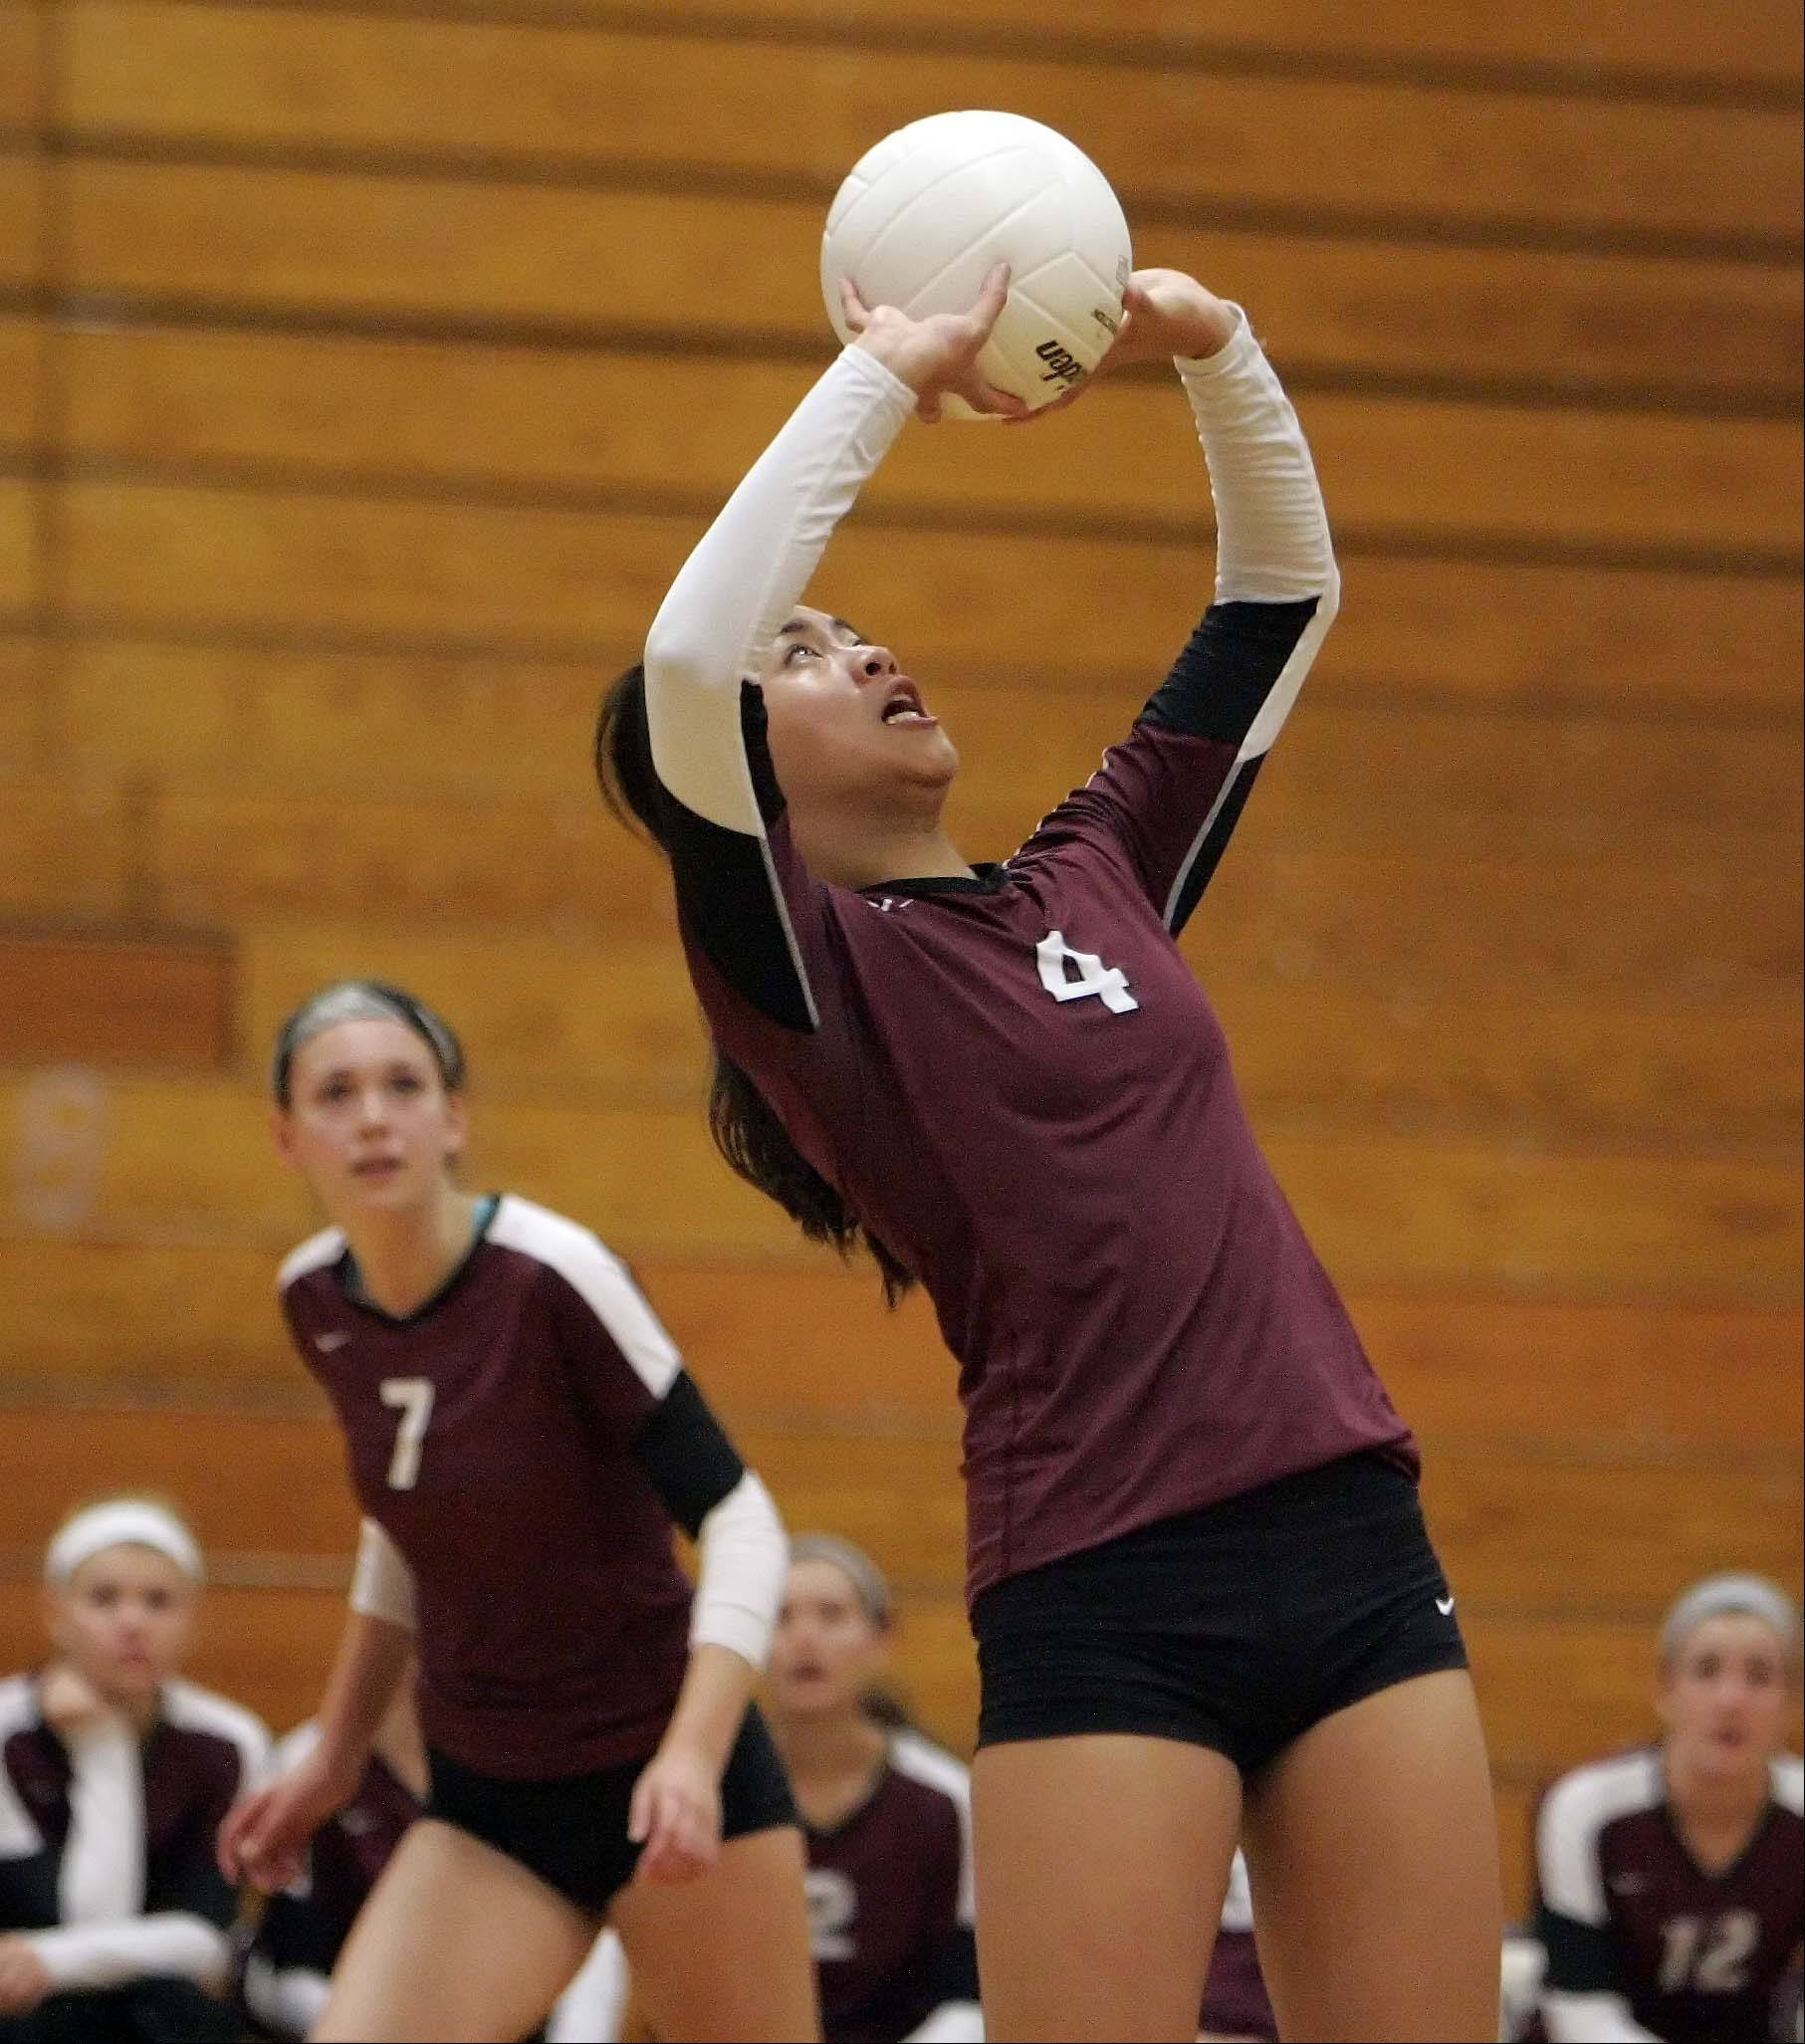 Elgin's Kristin Tayag sets up a pass to Hope Demel against Rolling Meadows during the Elgin High School Lady Maroons 22nd annual varsity invitational volleyball tournament Saturday at Chesbrough Field House.